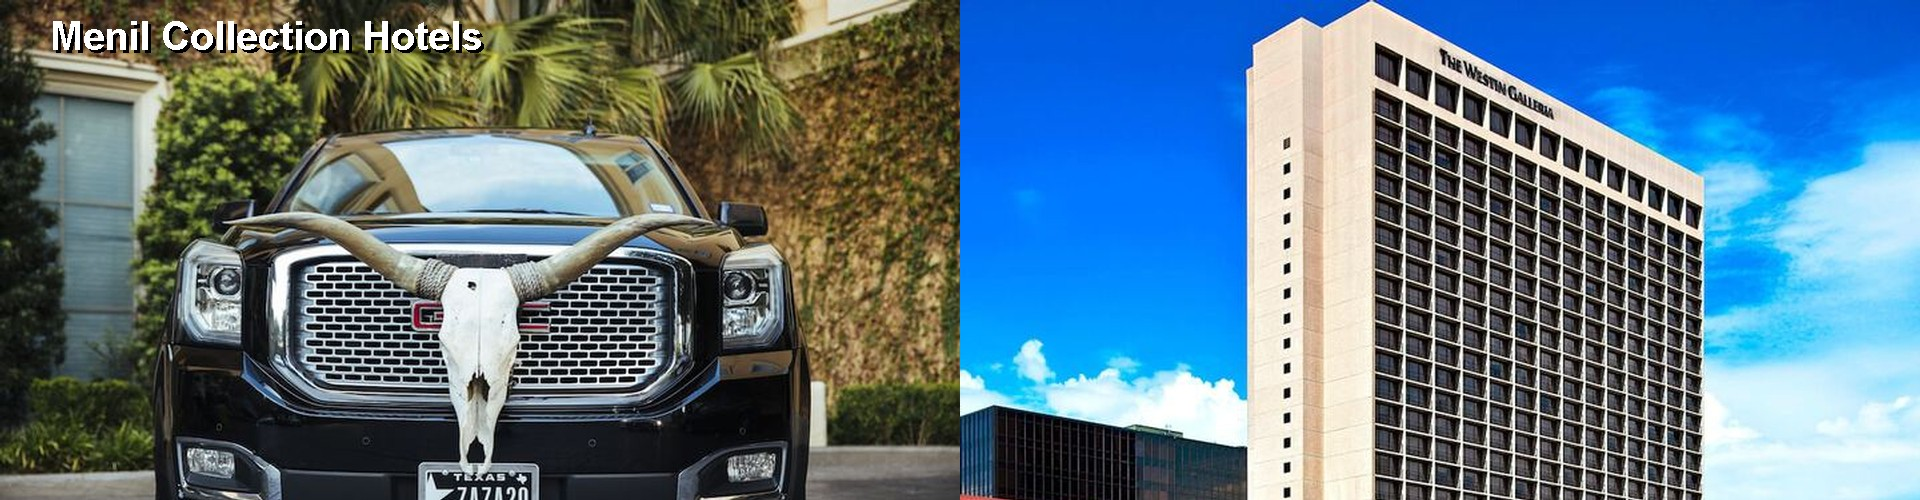 5 Best Hotels near Menil Collection